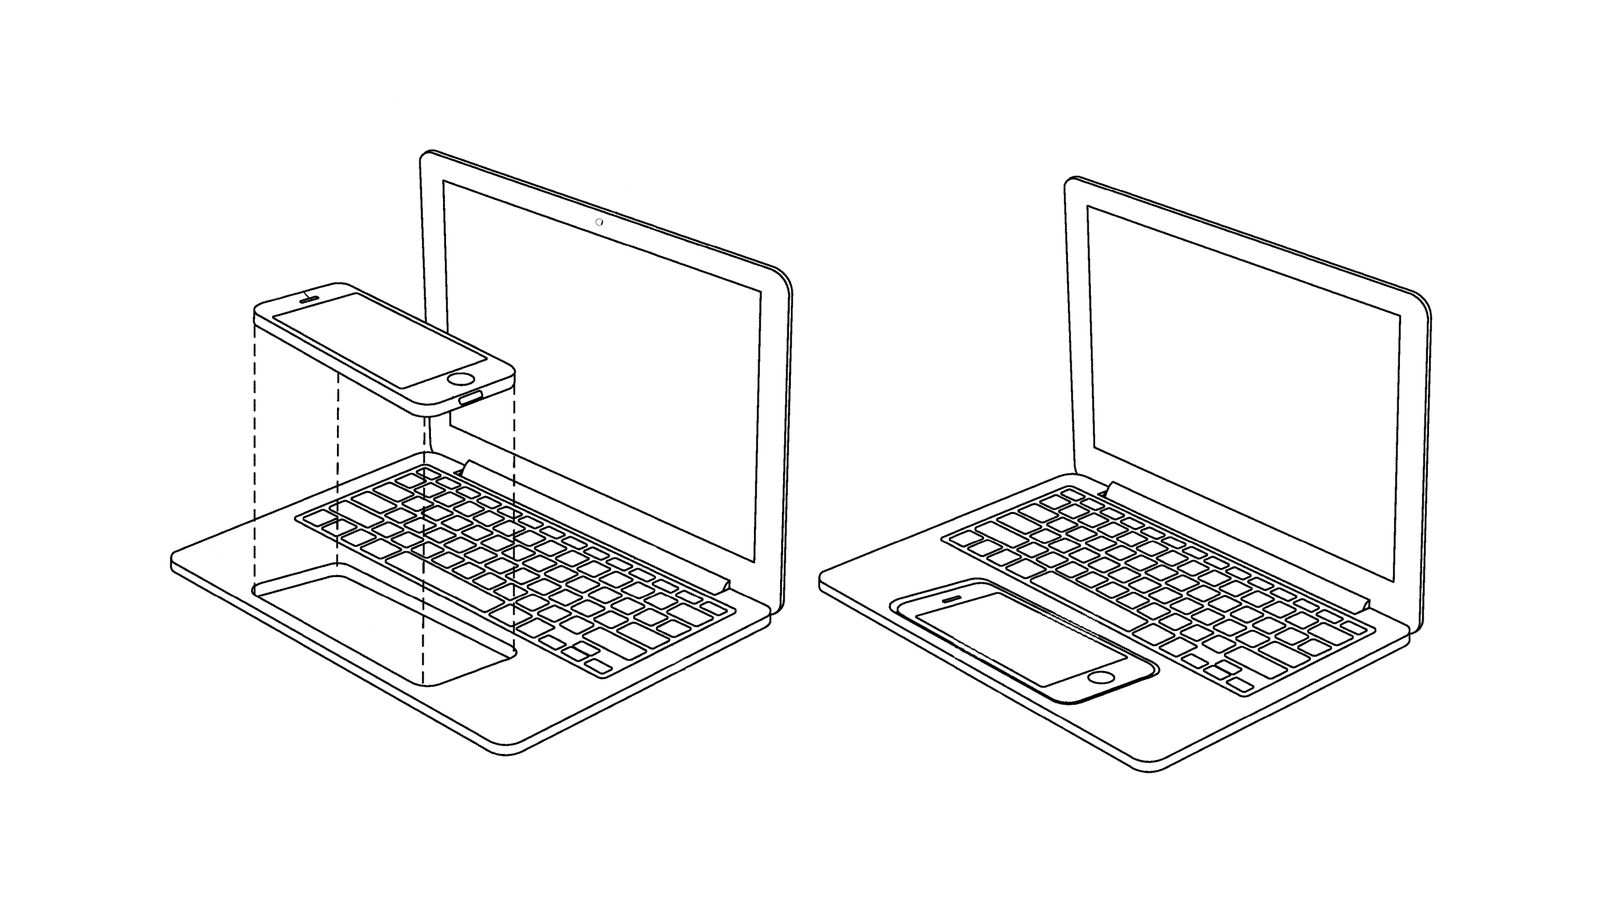 Apple imagines turning an iPhone or iPad into a